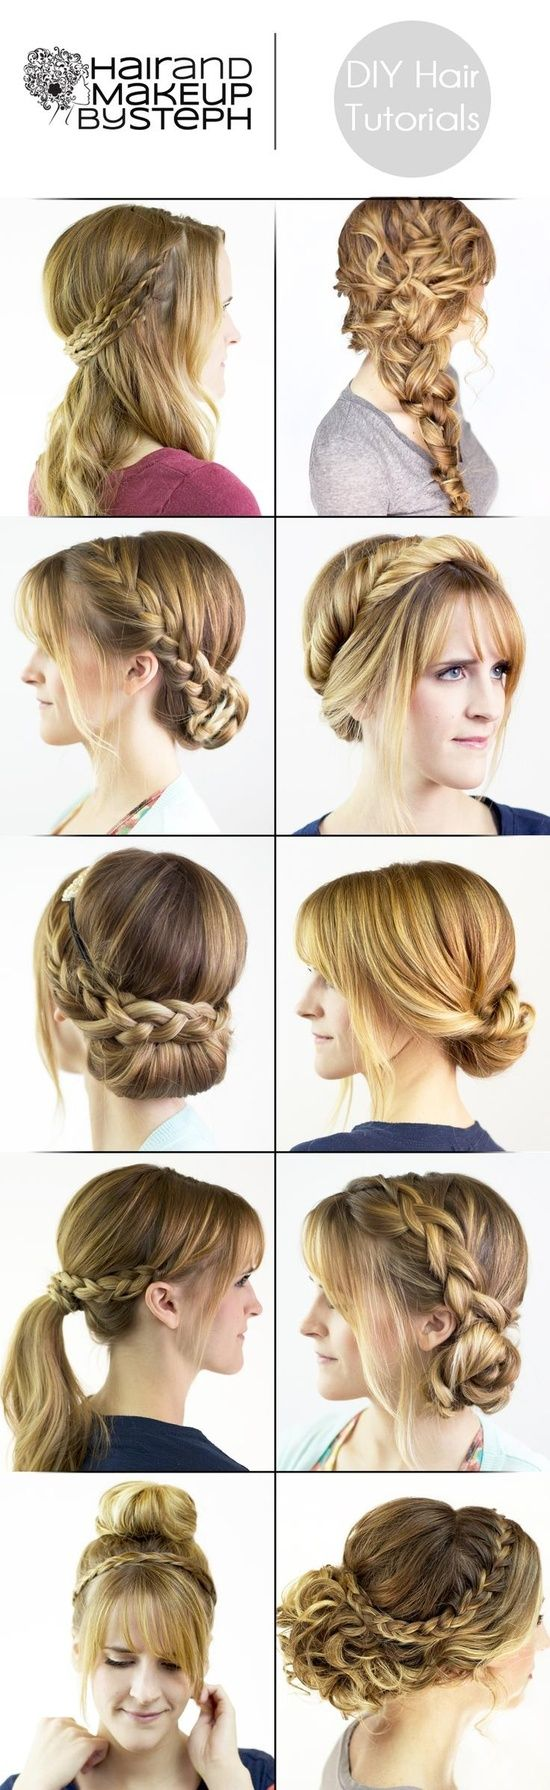 The best images about hair on pinterest updo maiden braid and